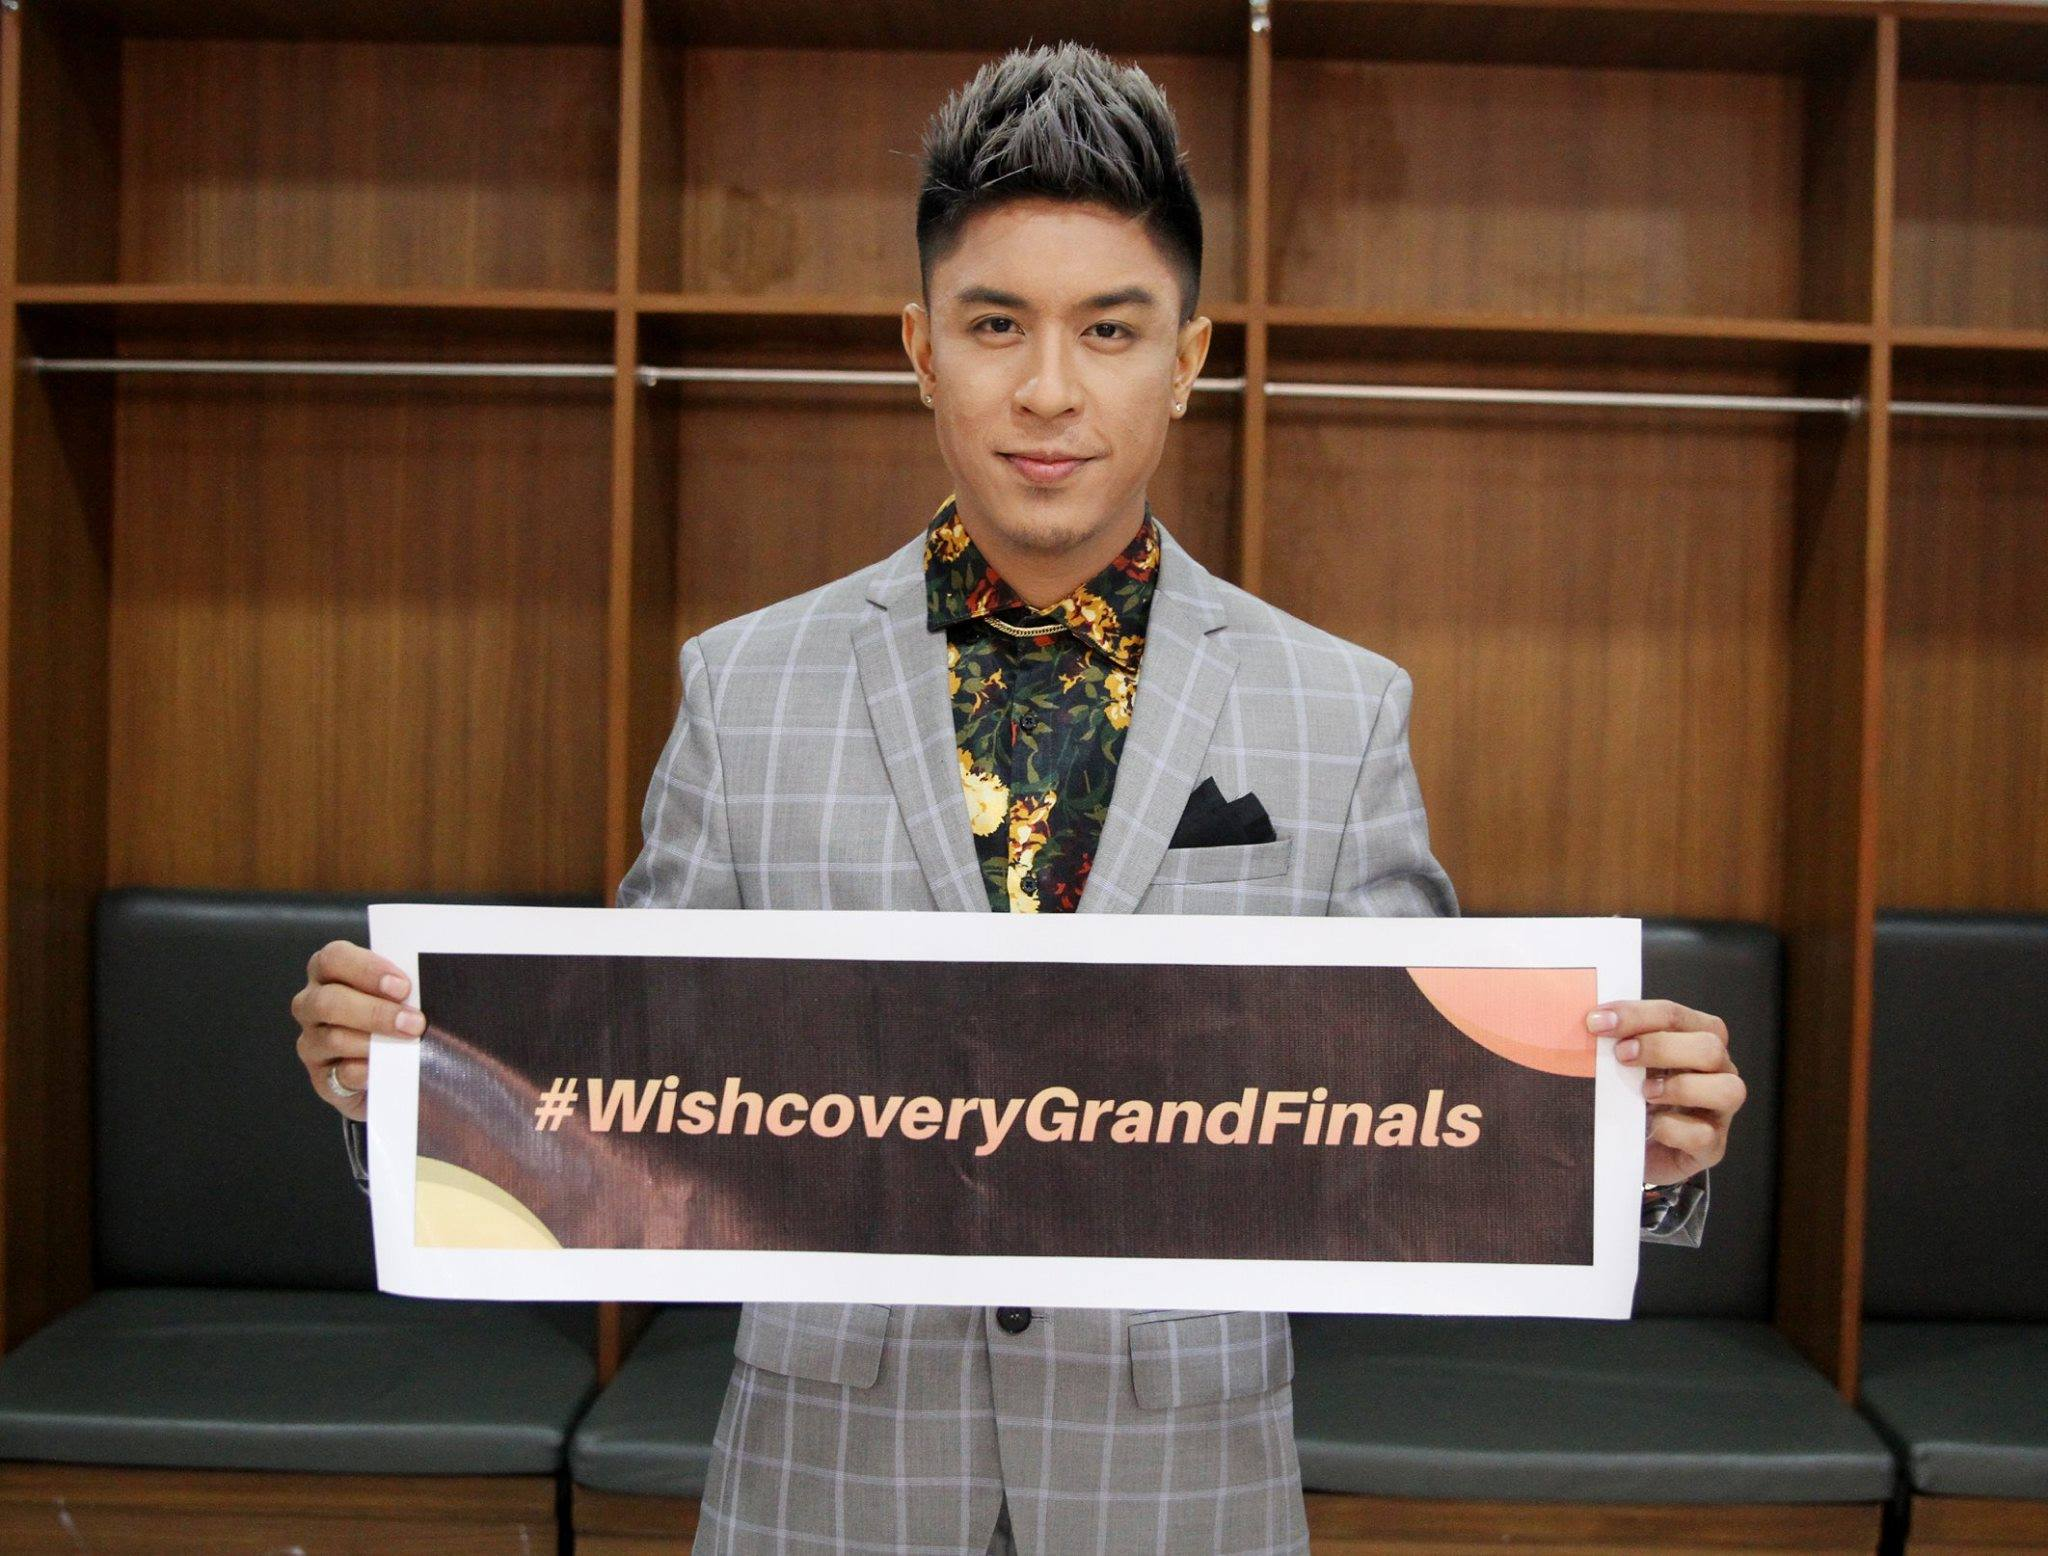 Holding the event's official hashtag is Wishcovery's debonair host Kris Lawrence. #WishcoveryGrandFinals